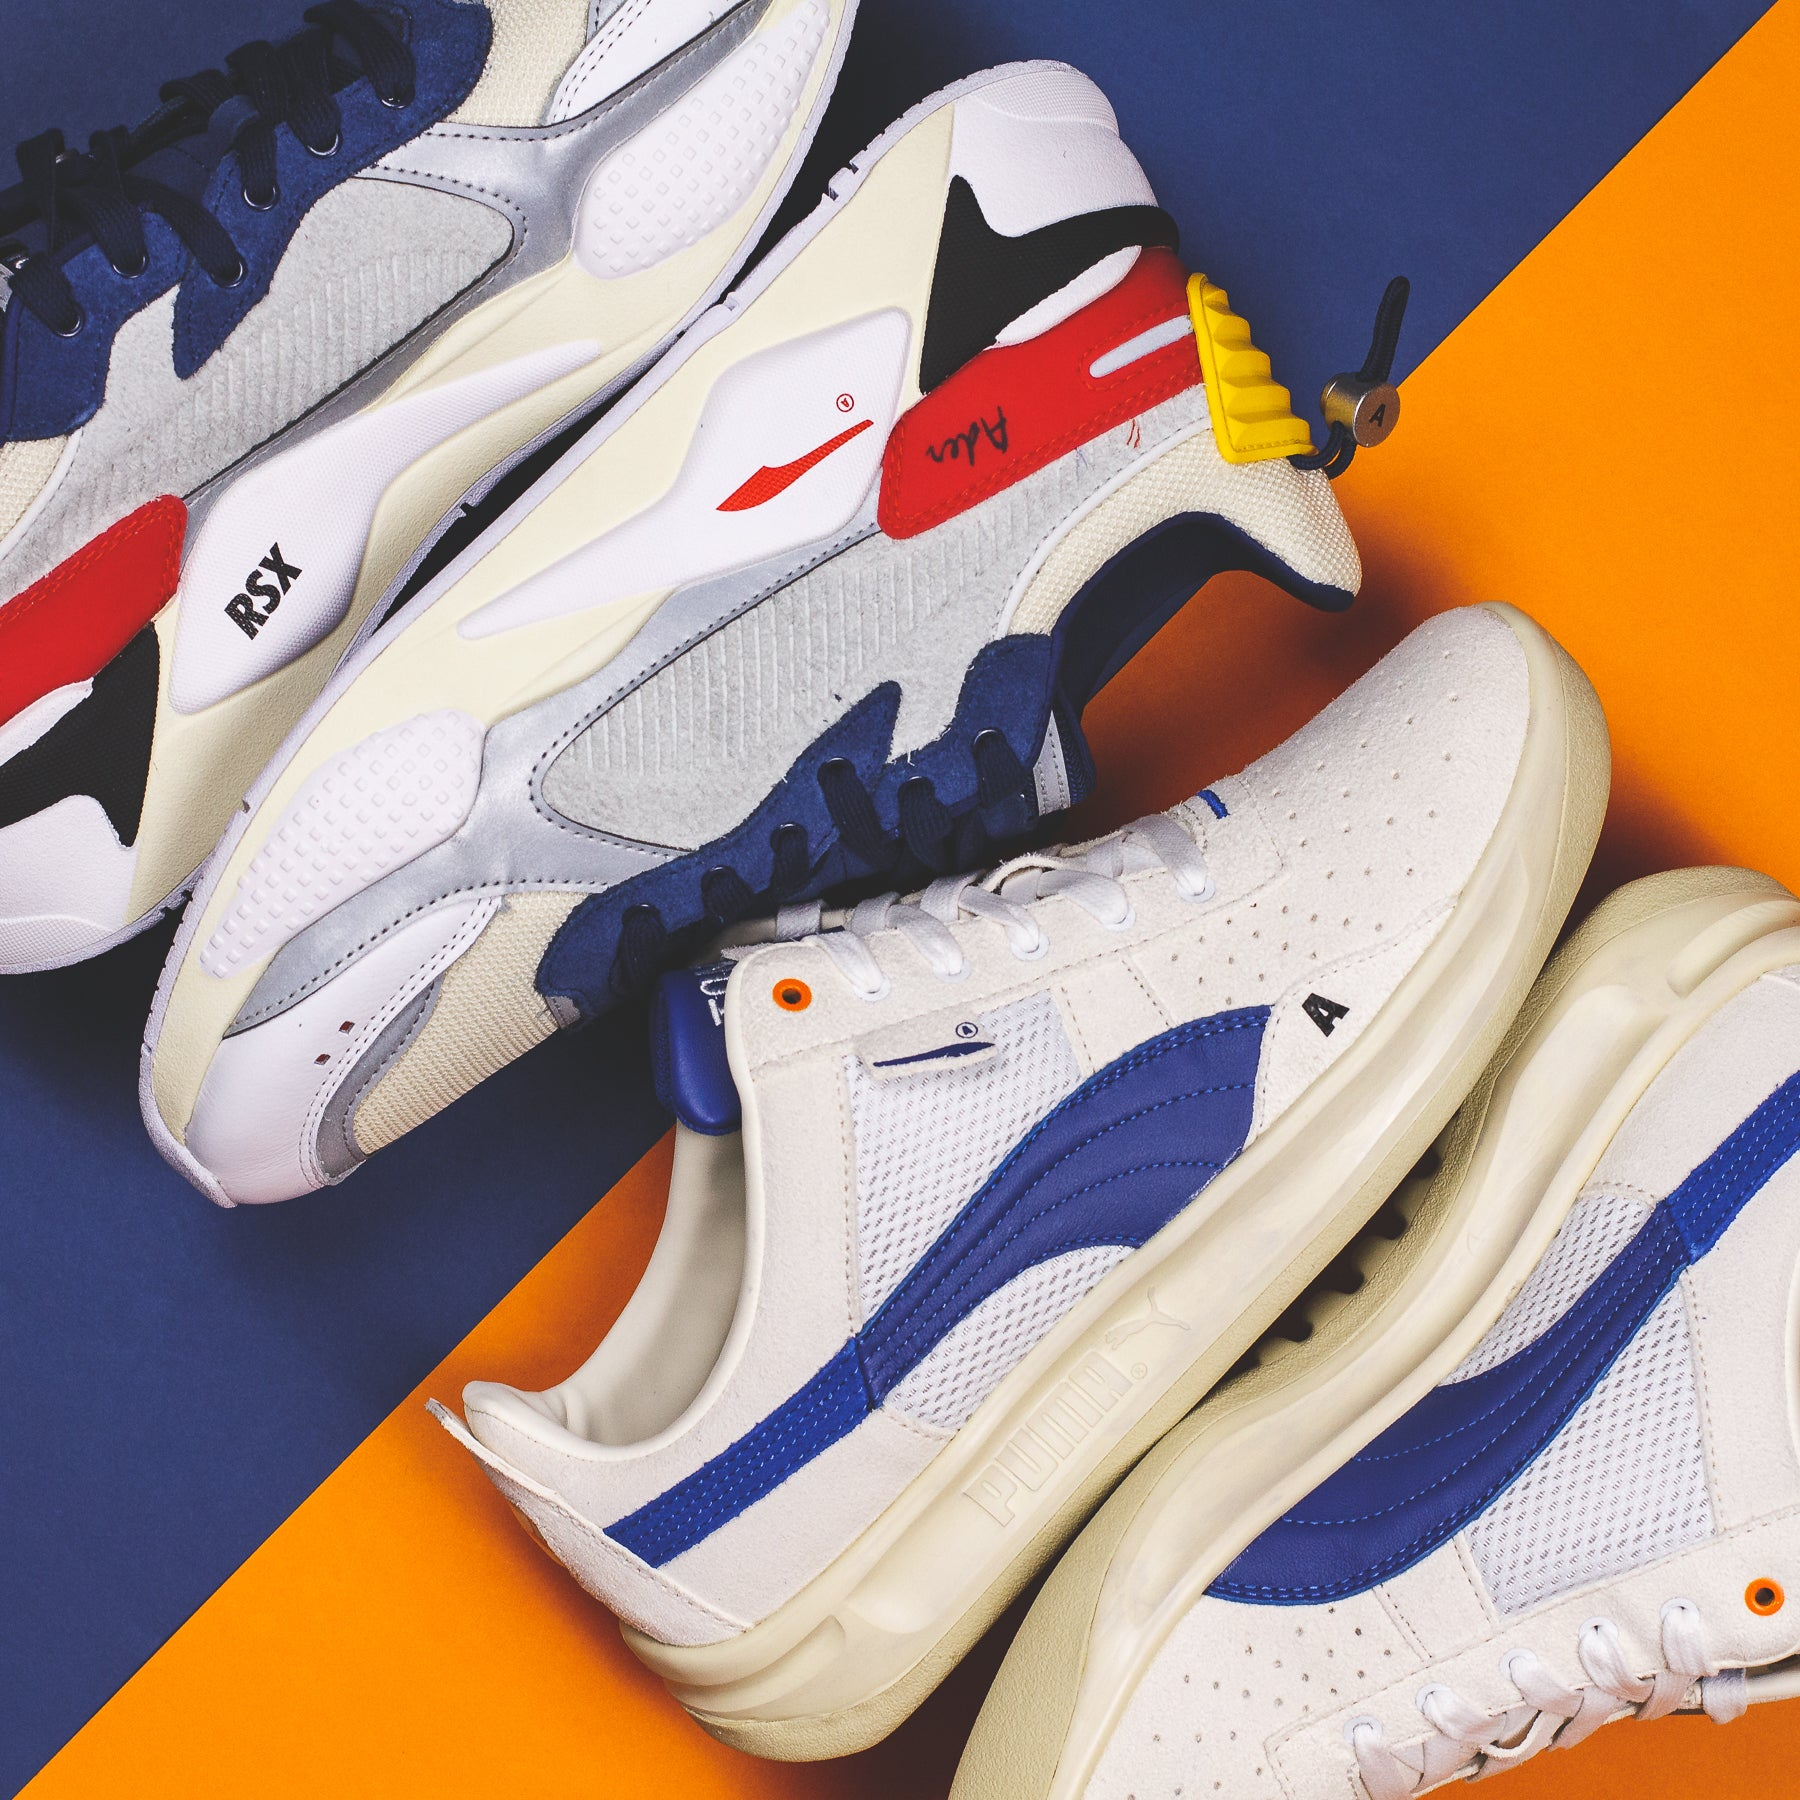 Puma x Ader Error Collection